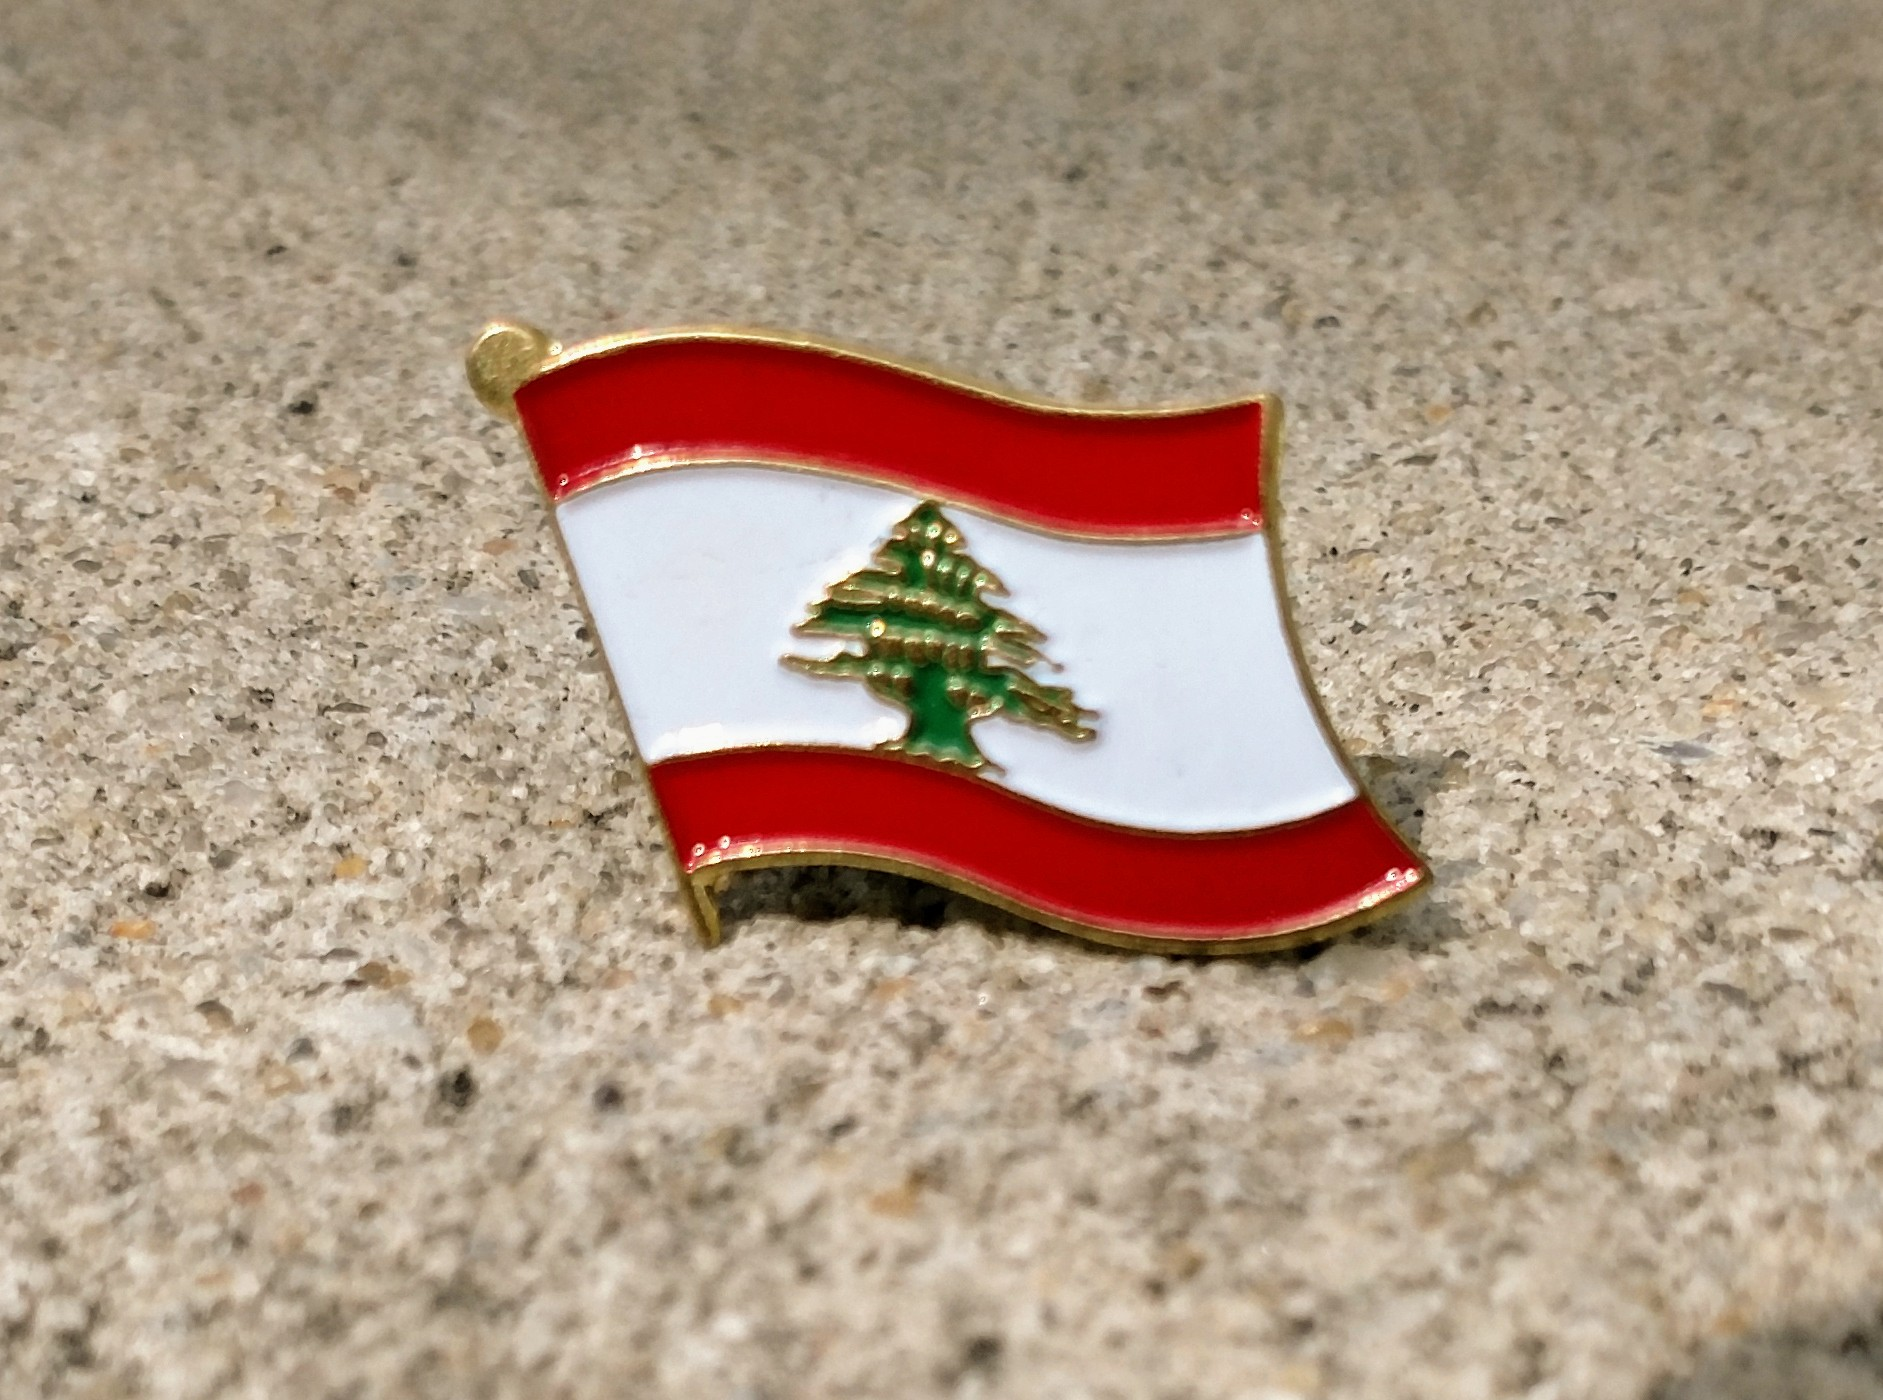 NEW Beirut Lebanon flag hat pin